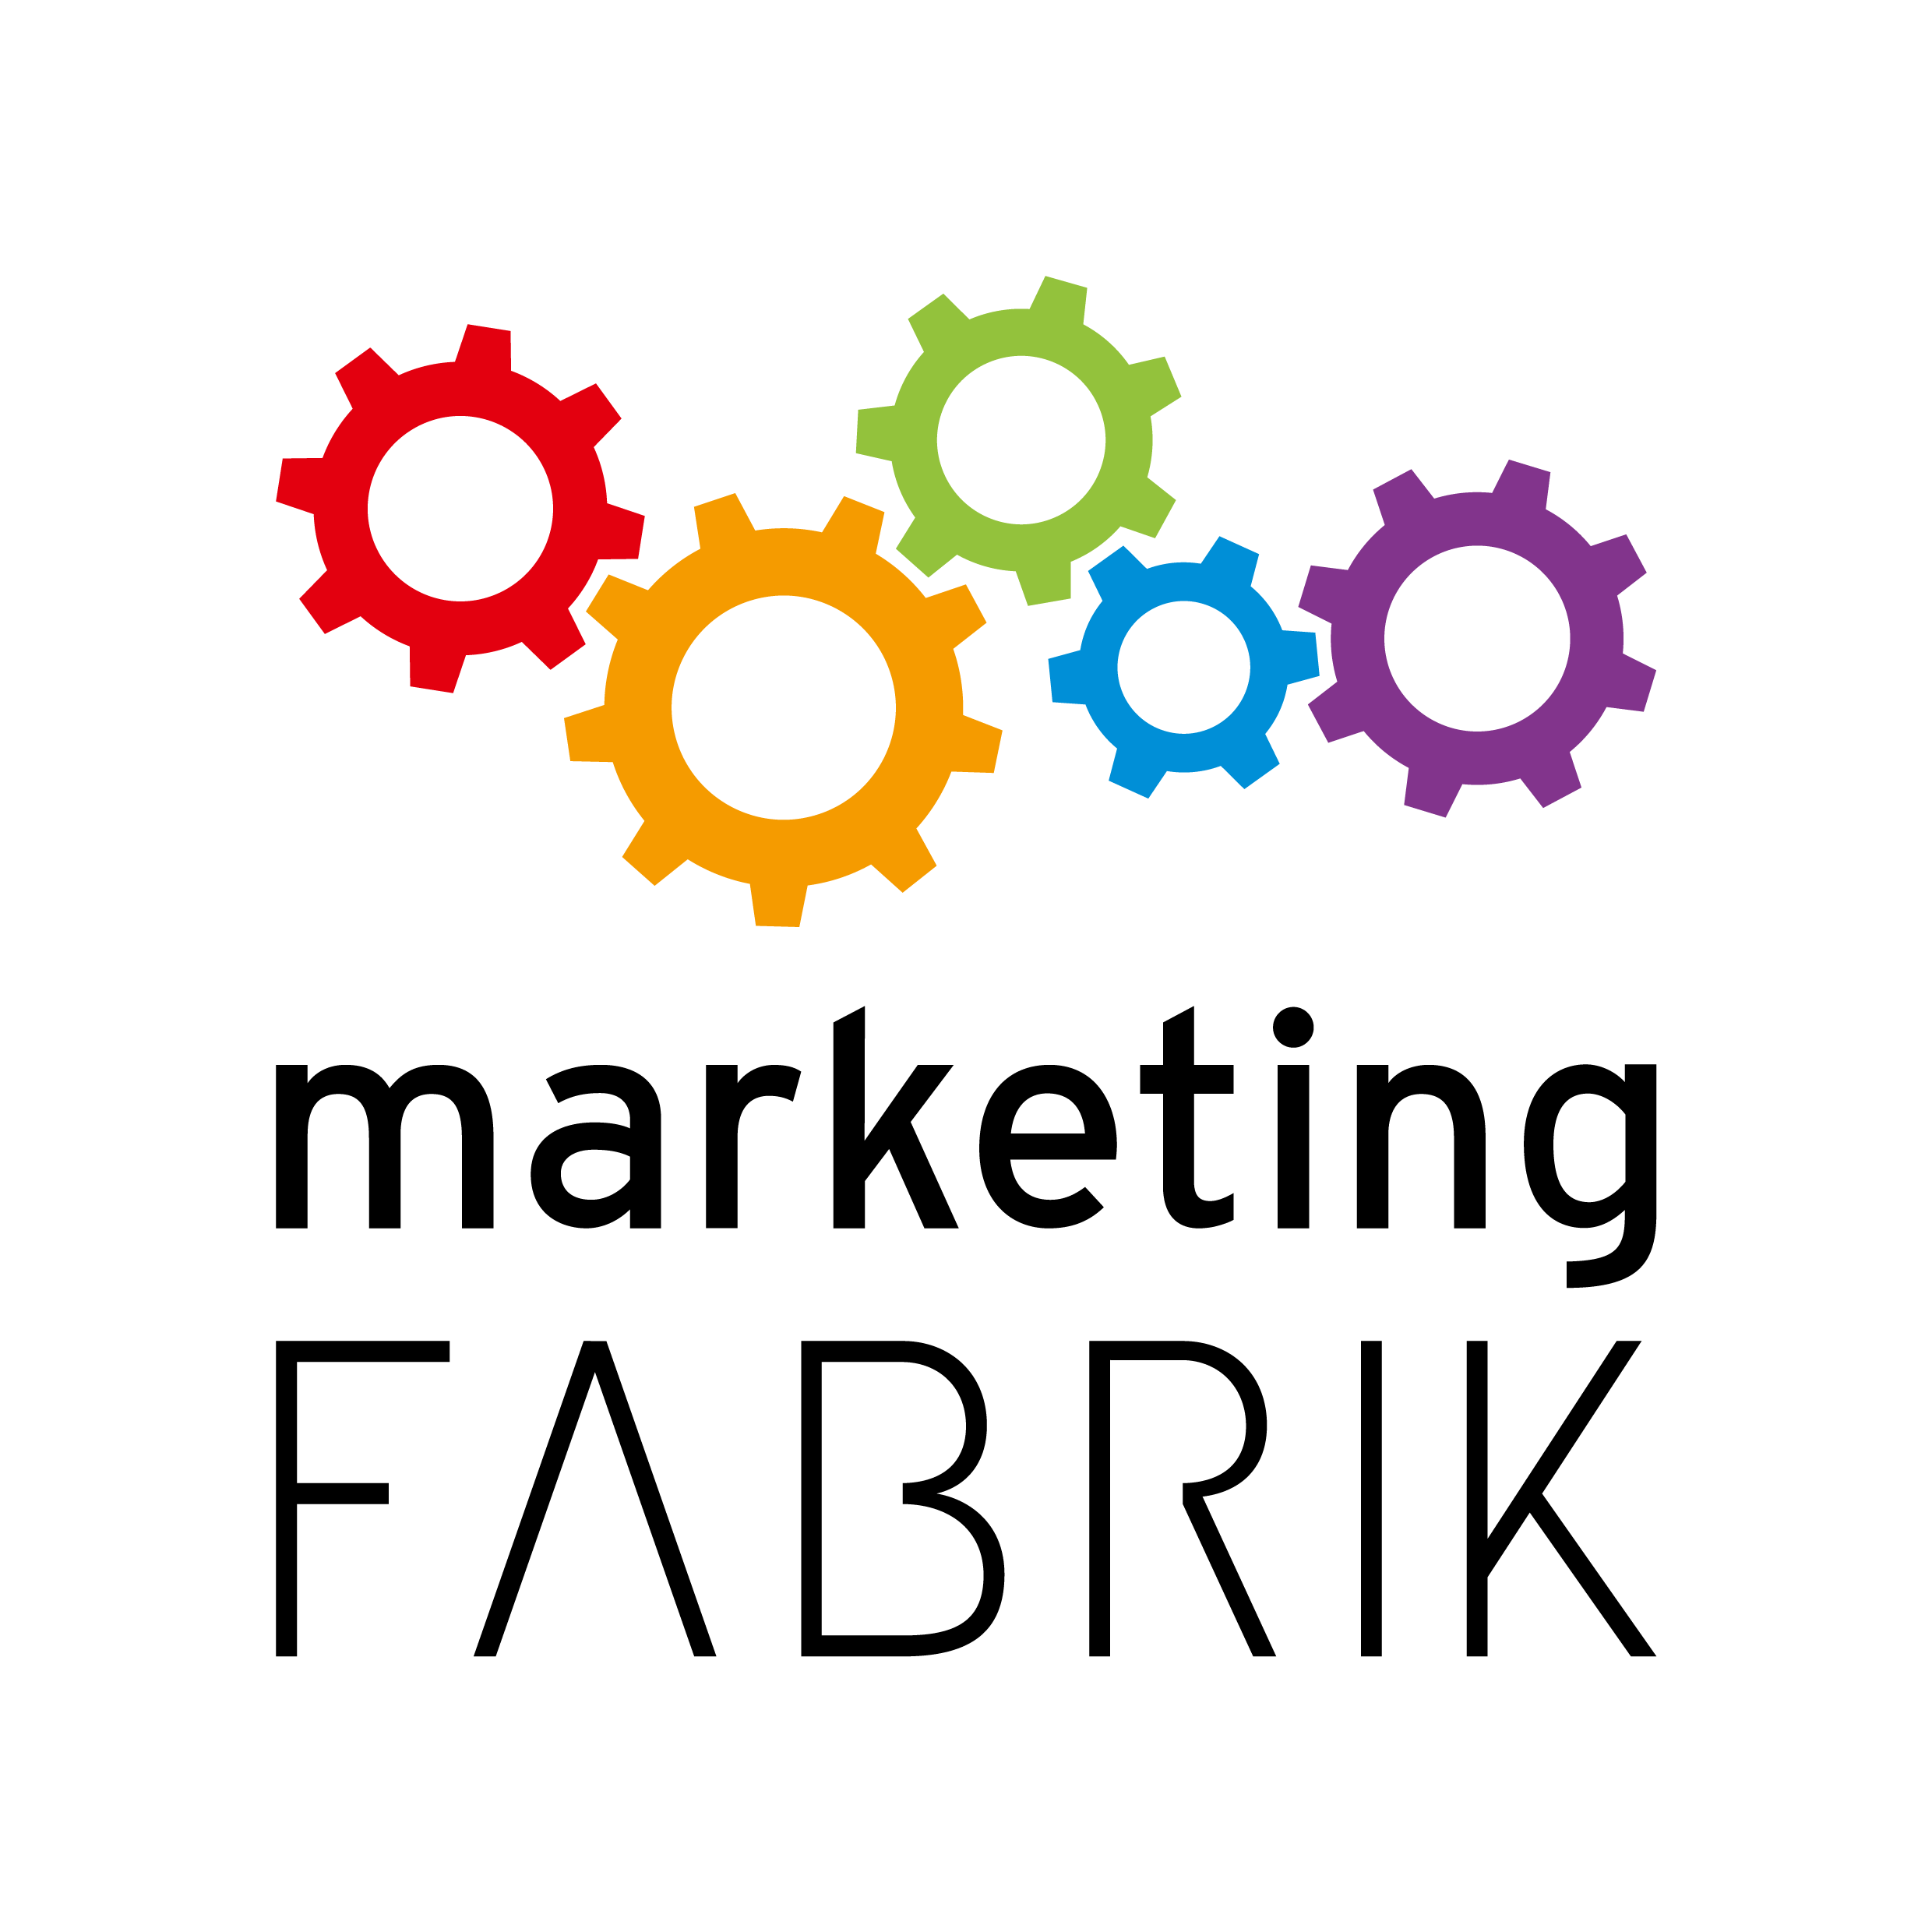 marketingfabrik.at